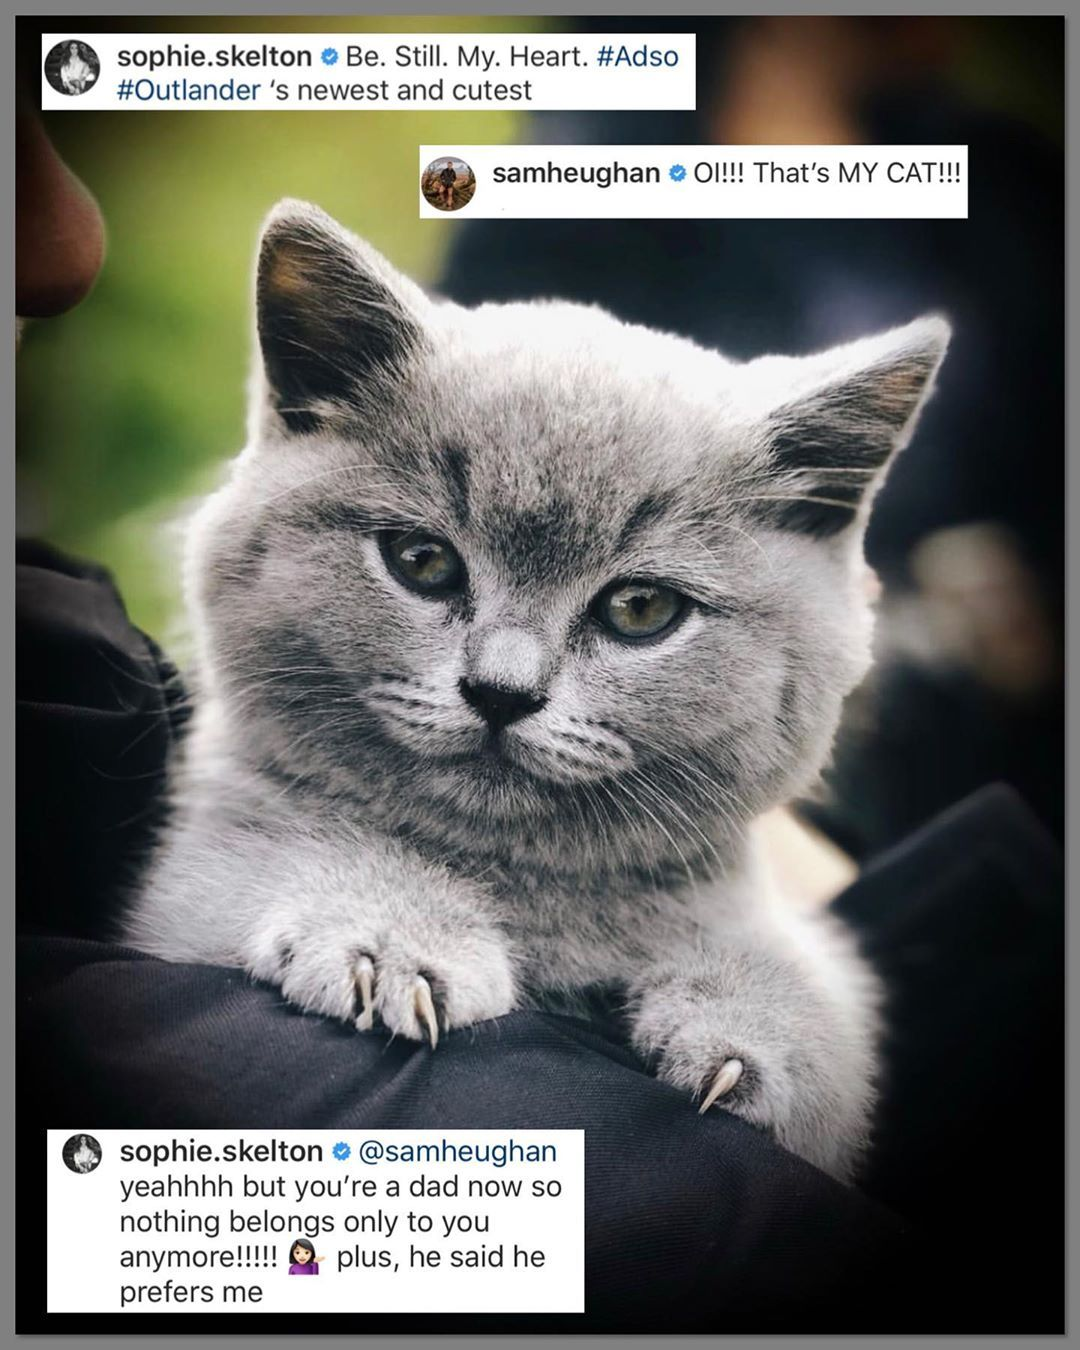 Sophieskelton Posted The Most Adorable Pic Today Of Bear One Of The Kittens That Will Be Playing Adso In S5 Be Stil Outlander Outlander Fan Outlander Starz